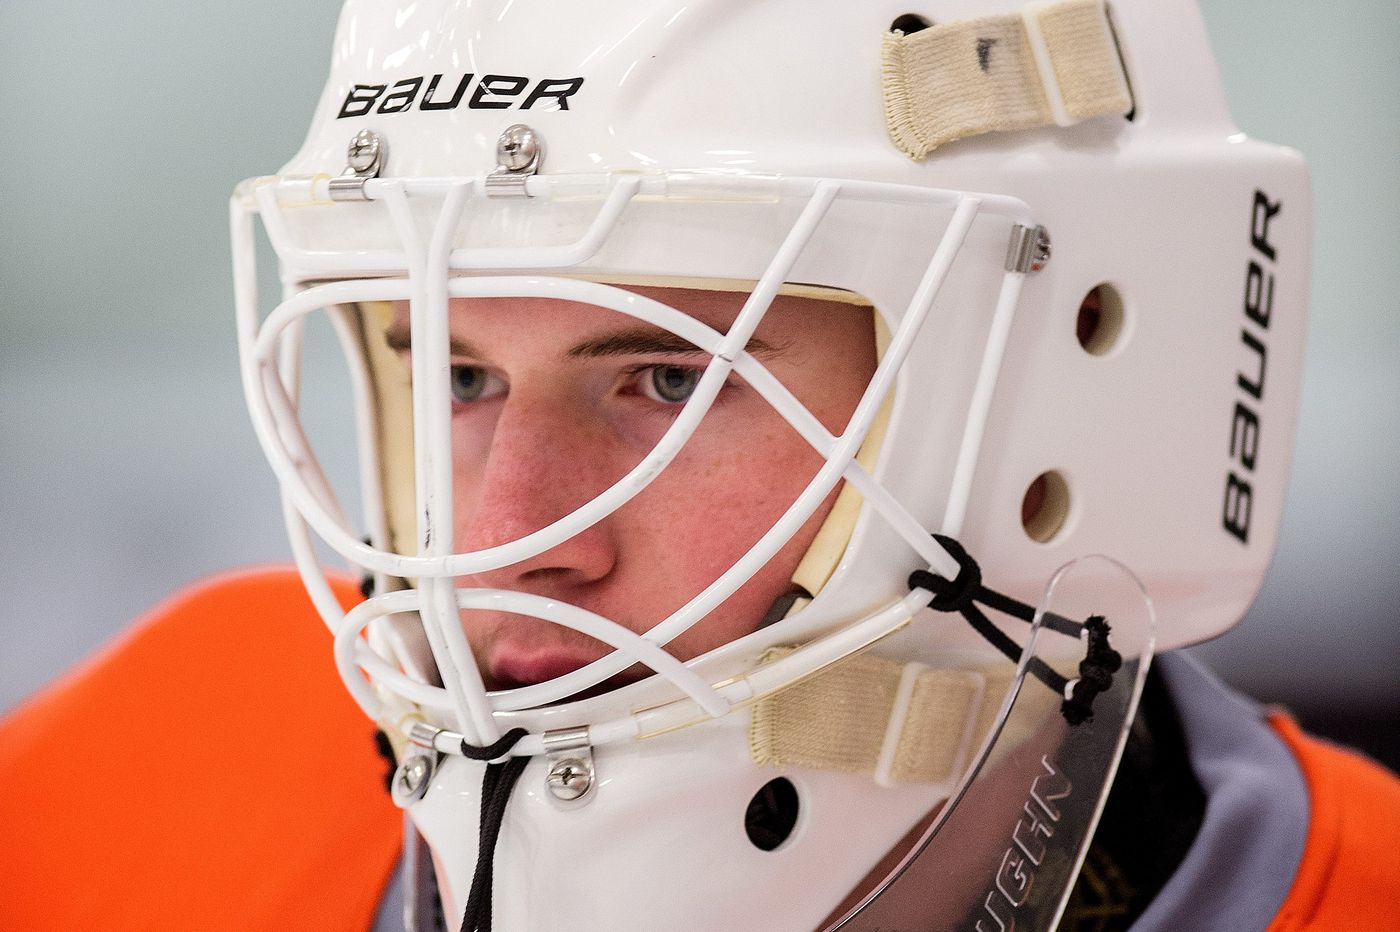 c3a36da7ac3 If Flyers prospect Carter Hart has a long career, credit his sports  psychologist